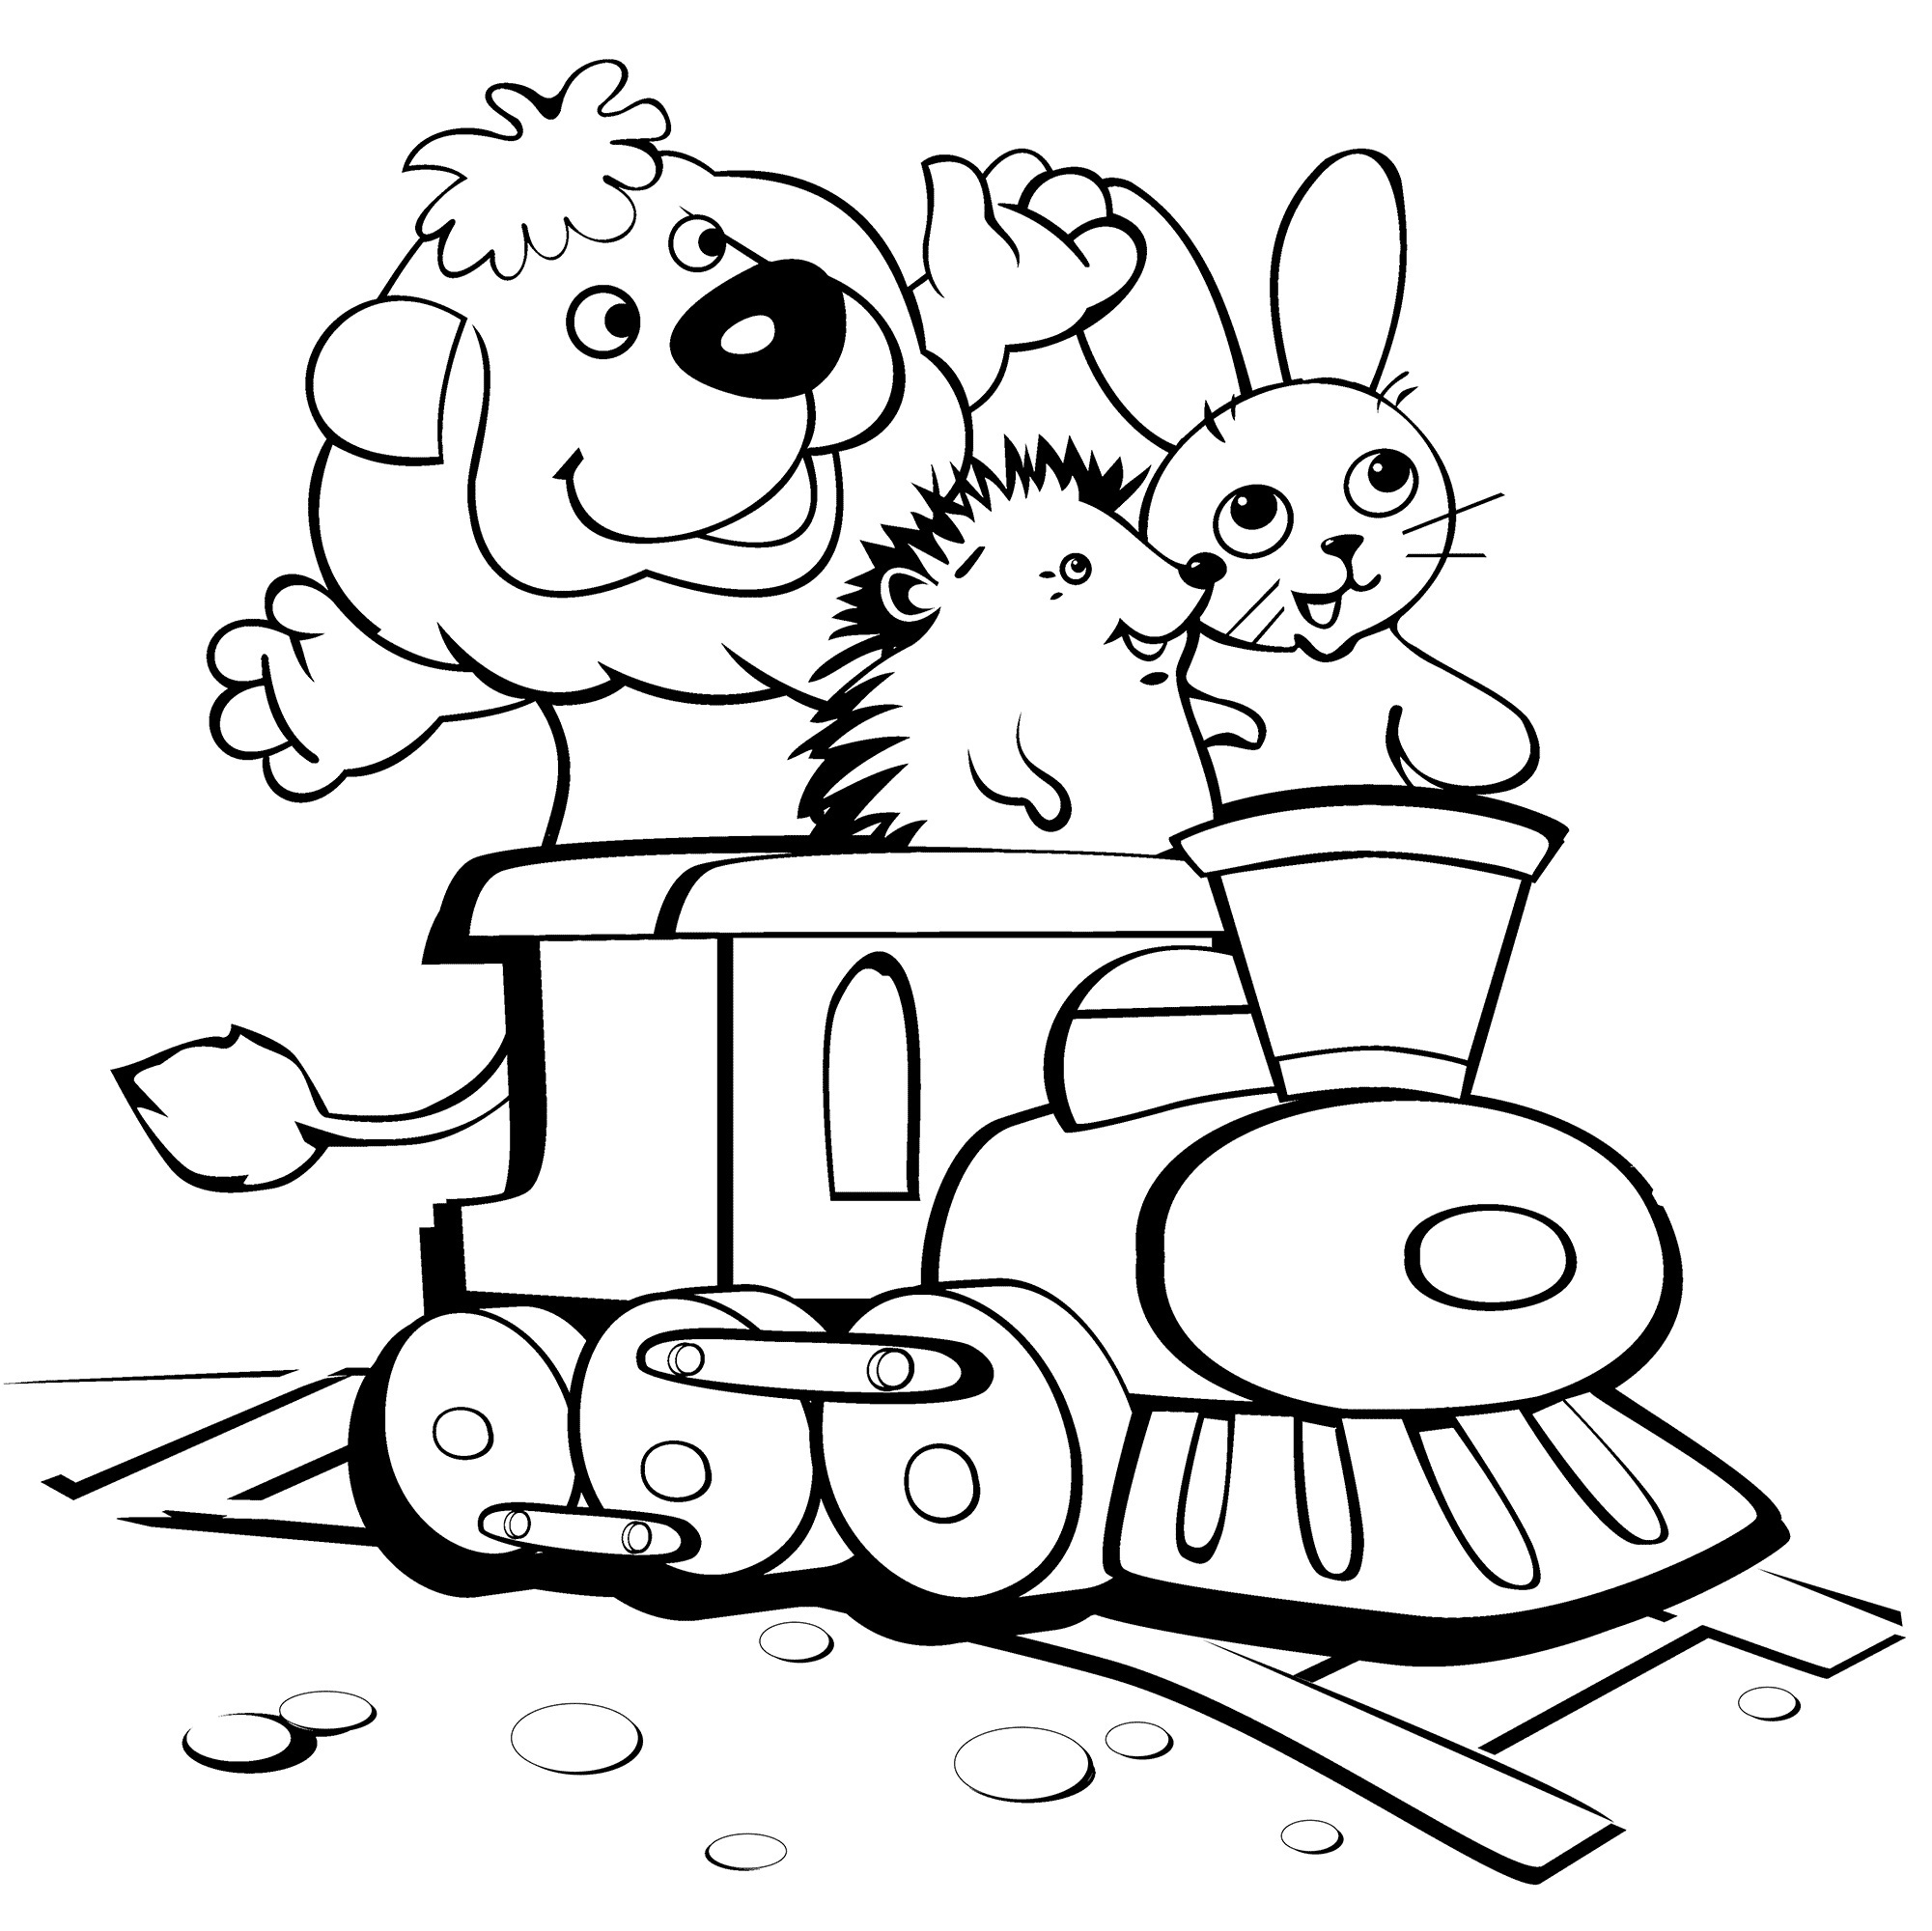 Thomas train for coloring - Coloring Book Train Thomas The Train Online Coloring Book Train Colouring Games